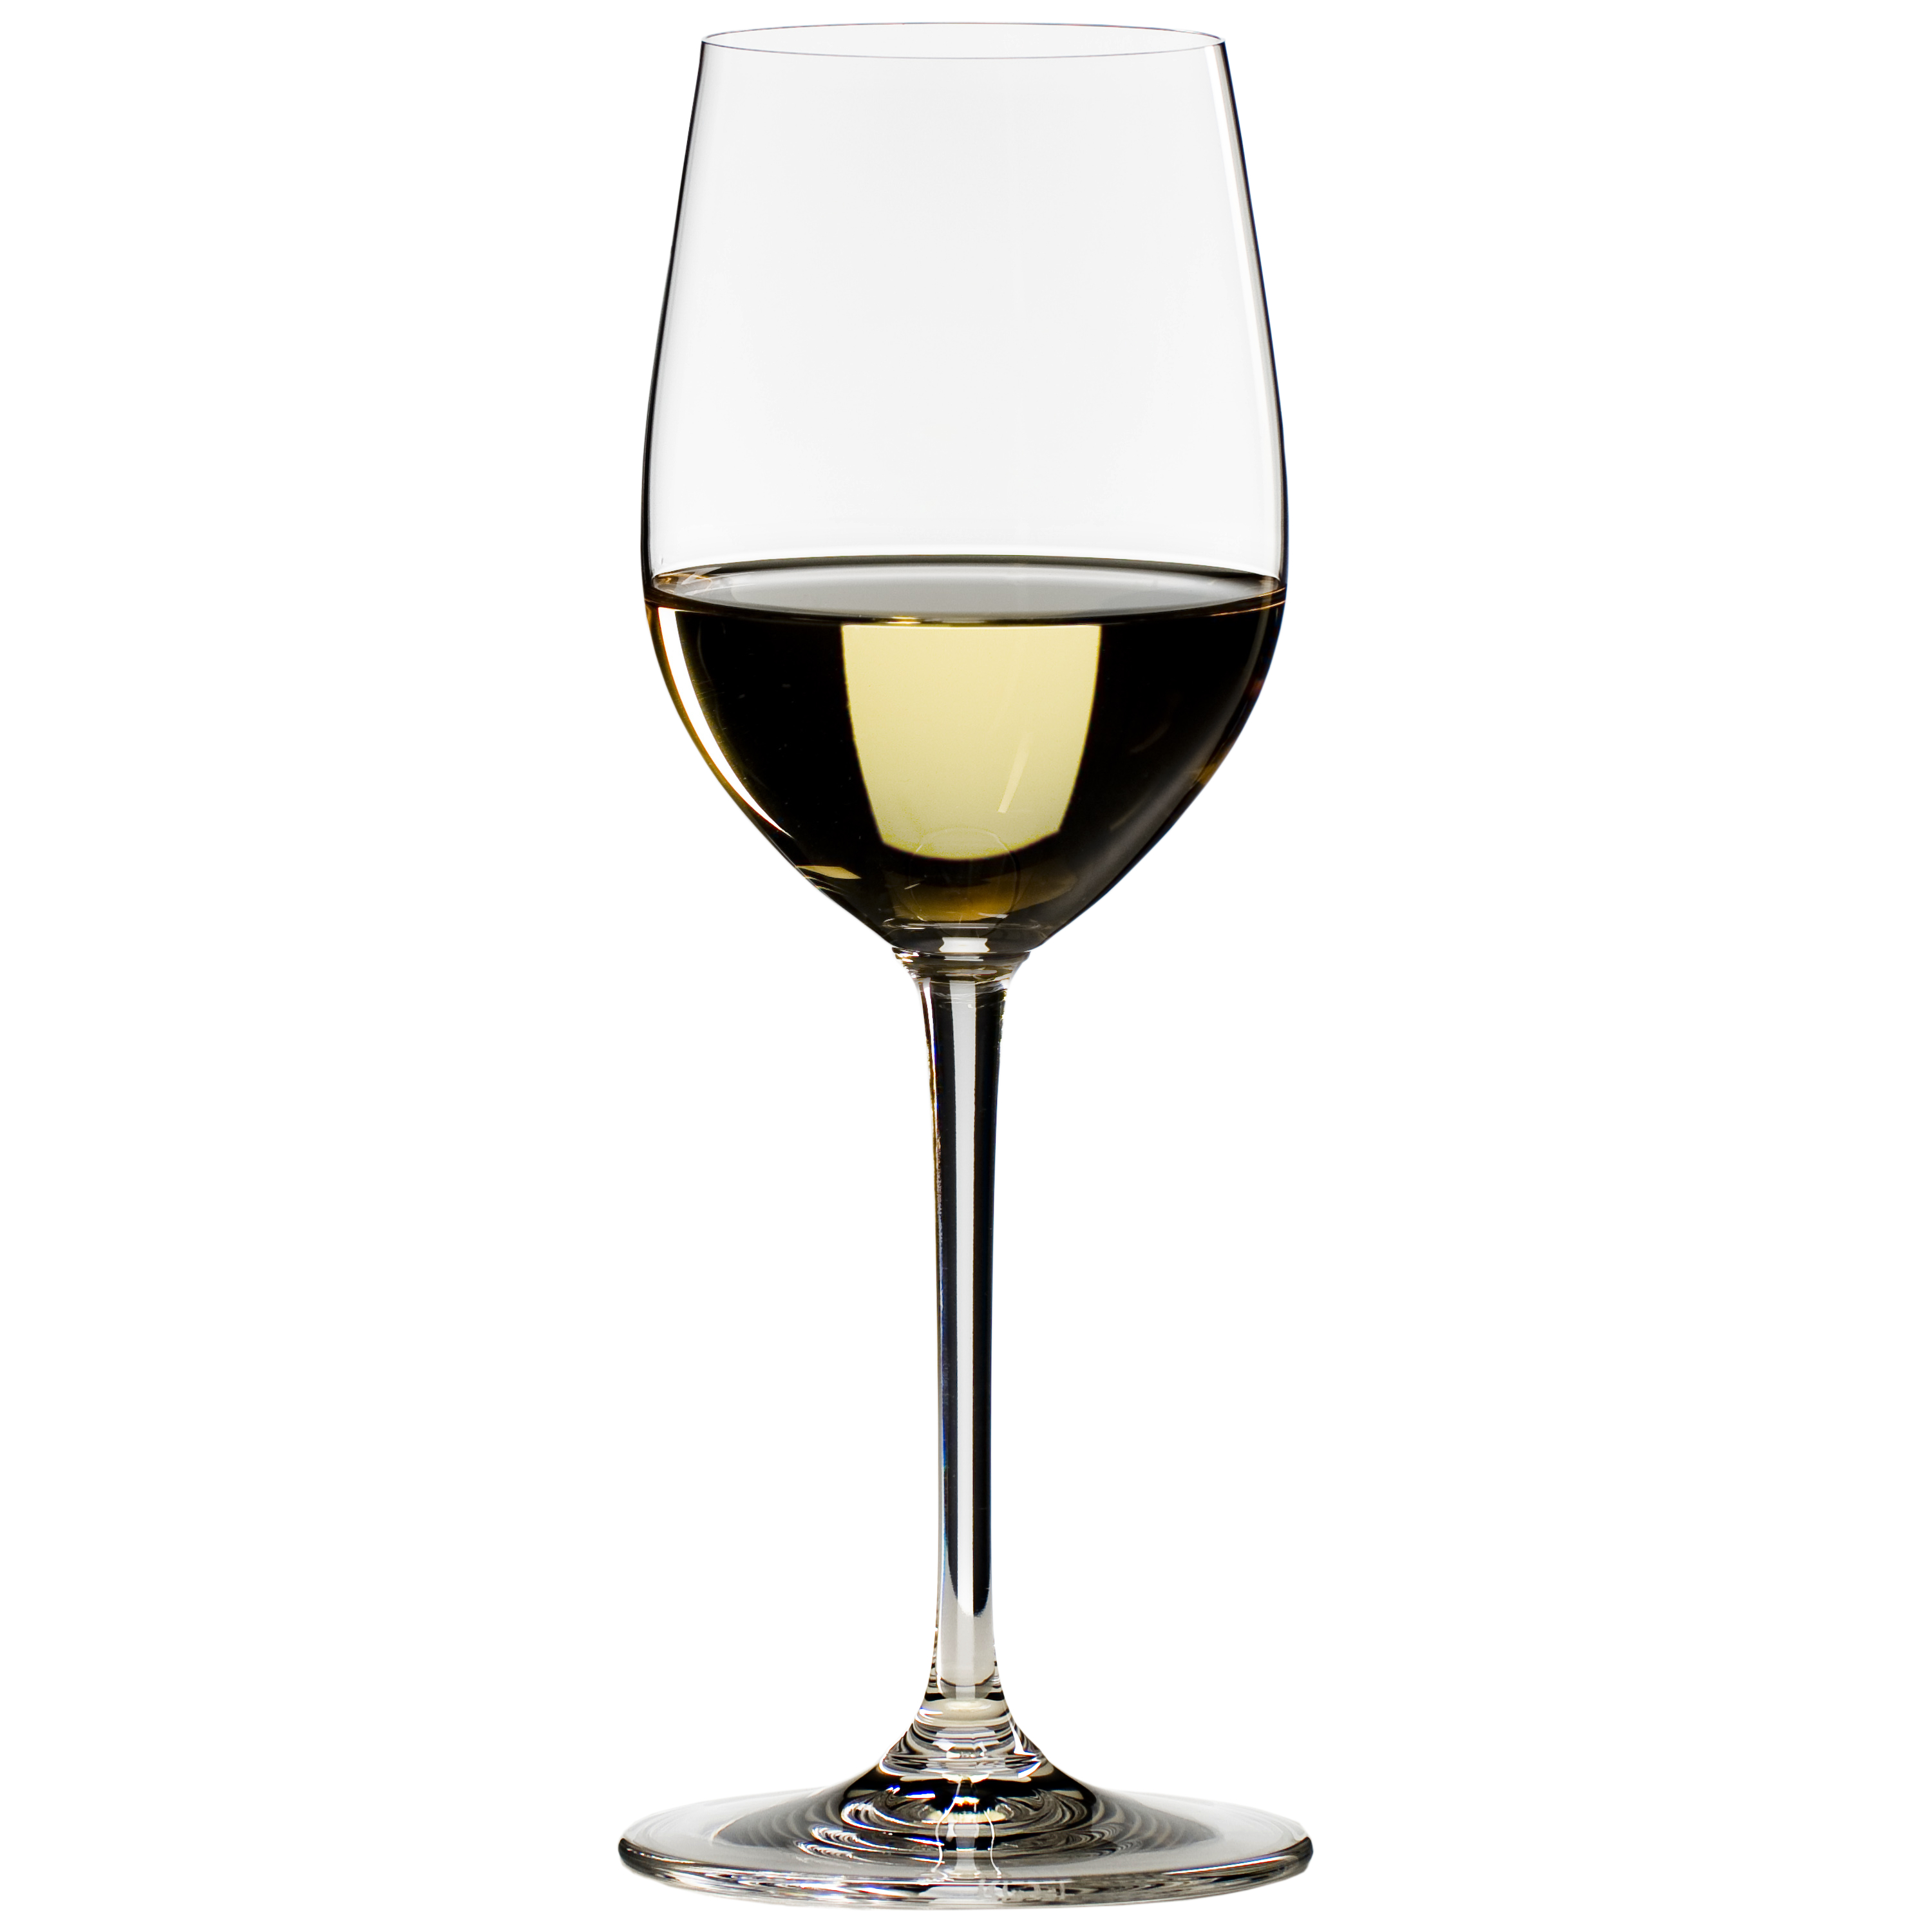 Riedel Vinum XL Leaded Crystal Viognier/Chardonnay Wine Glass, Set of 2